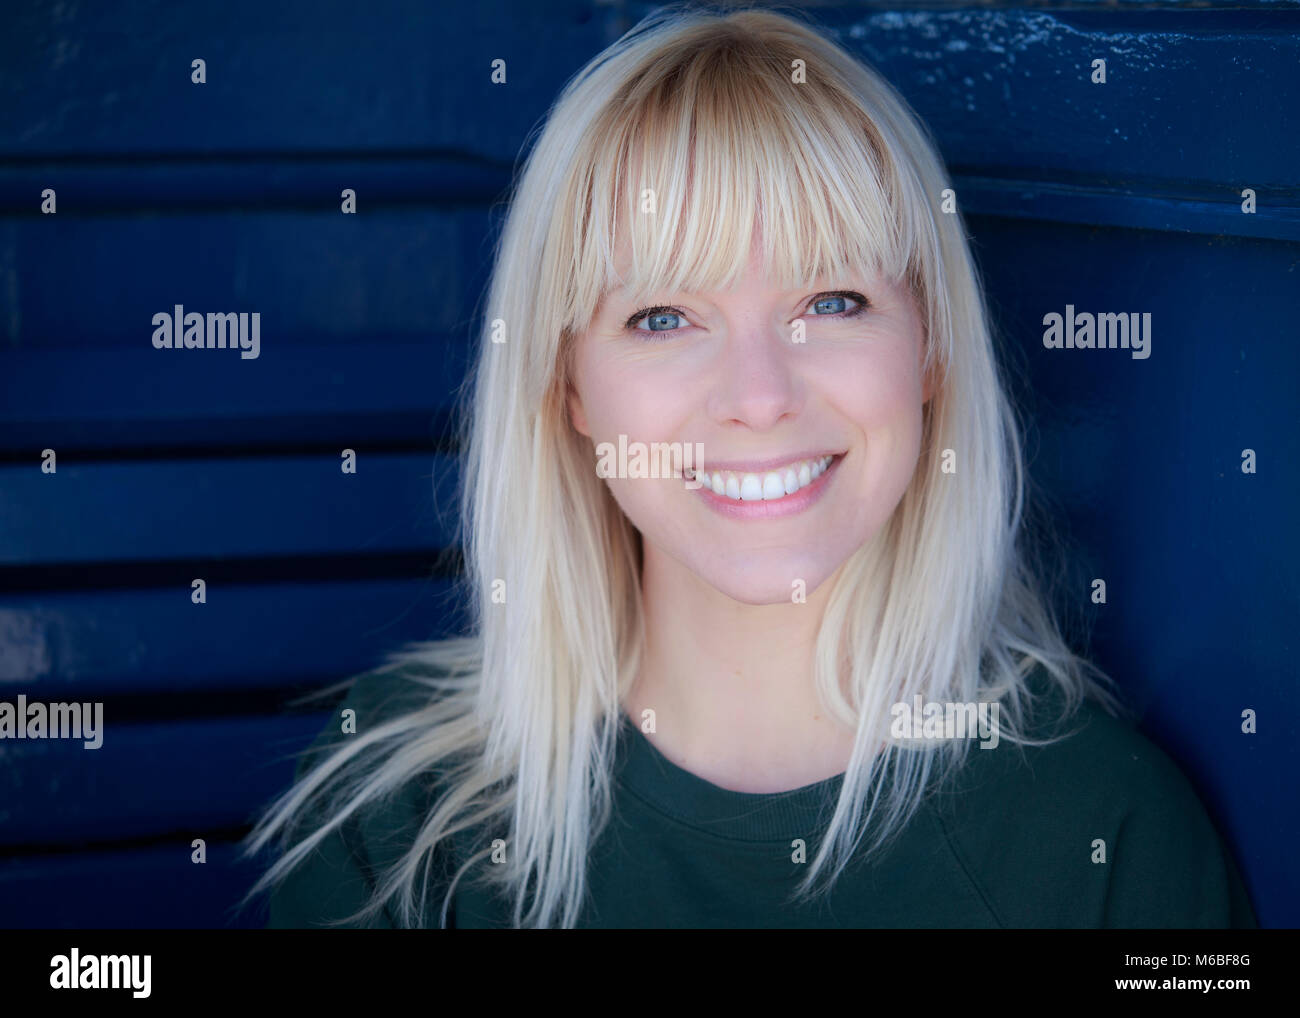 Ali James, Actor, Headshot © Clarissa Debenham / Alamy - Stock Image